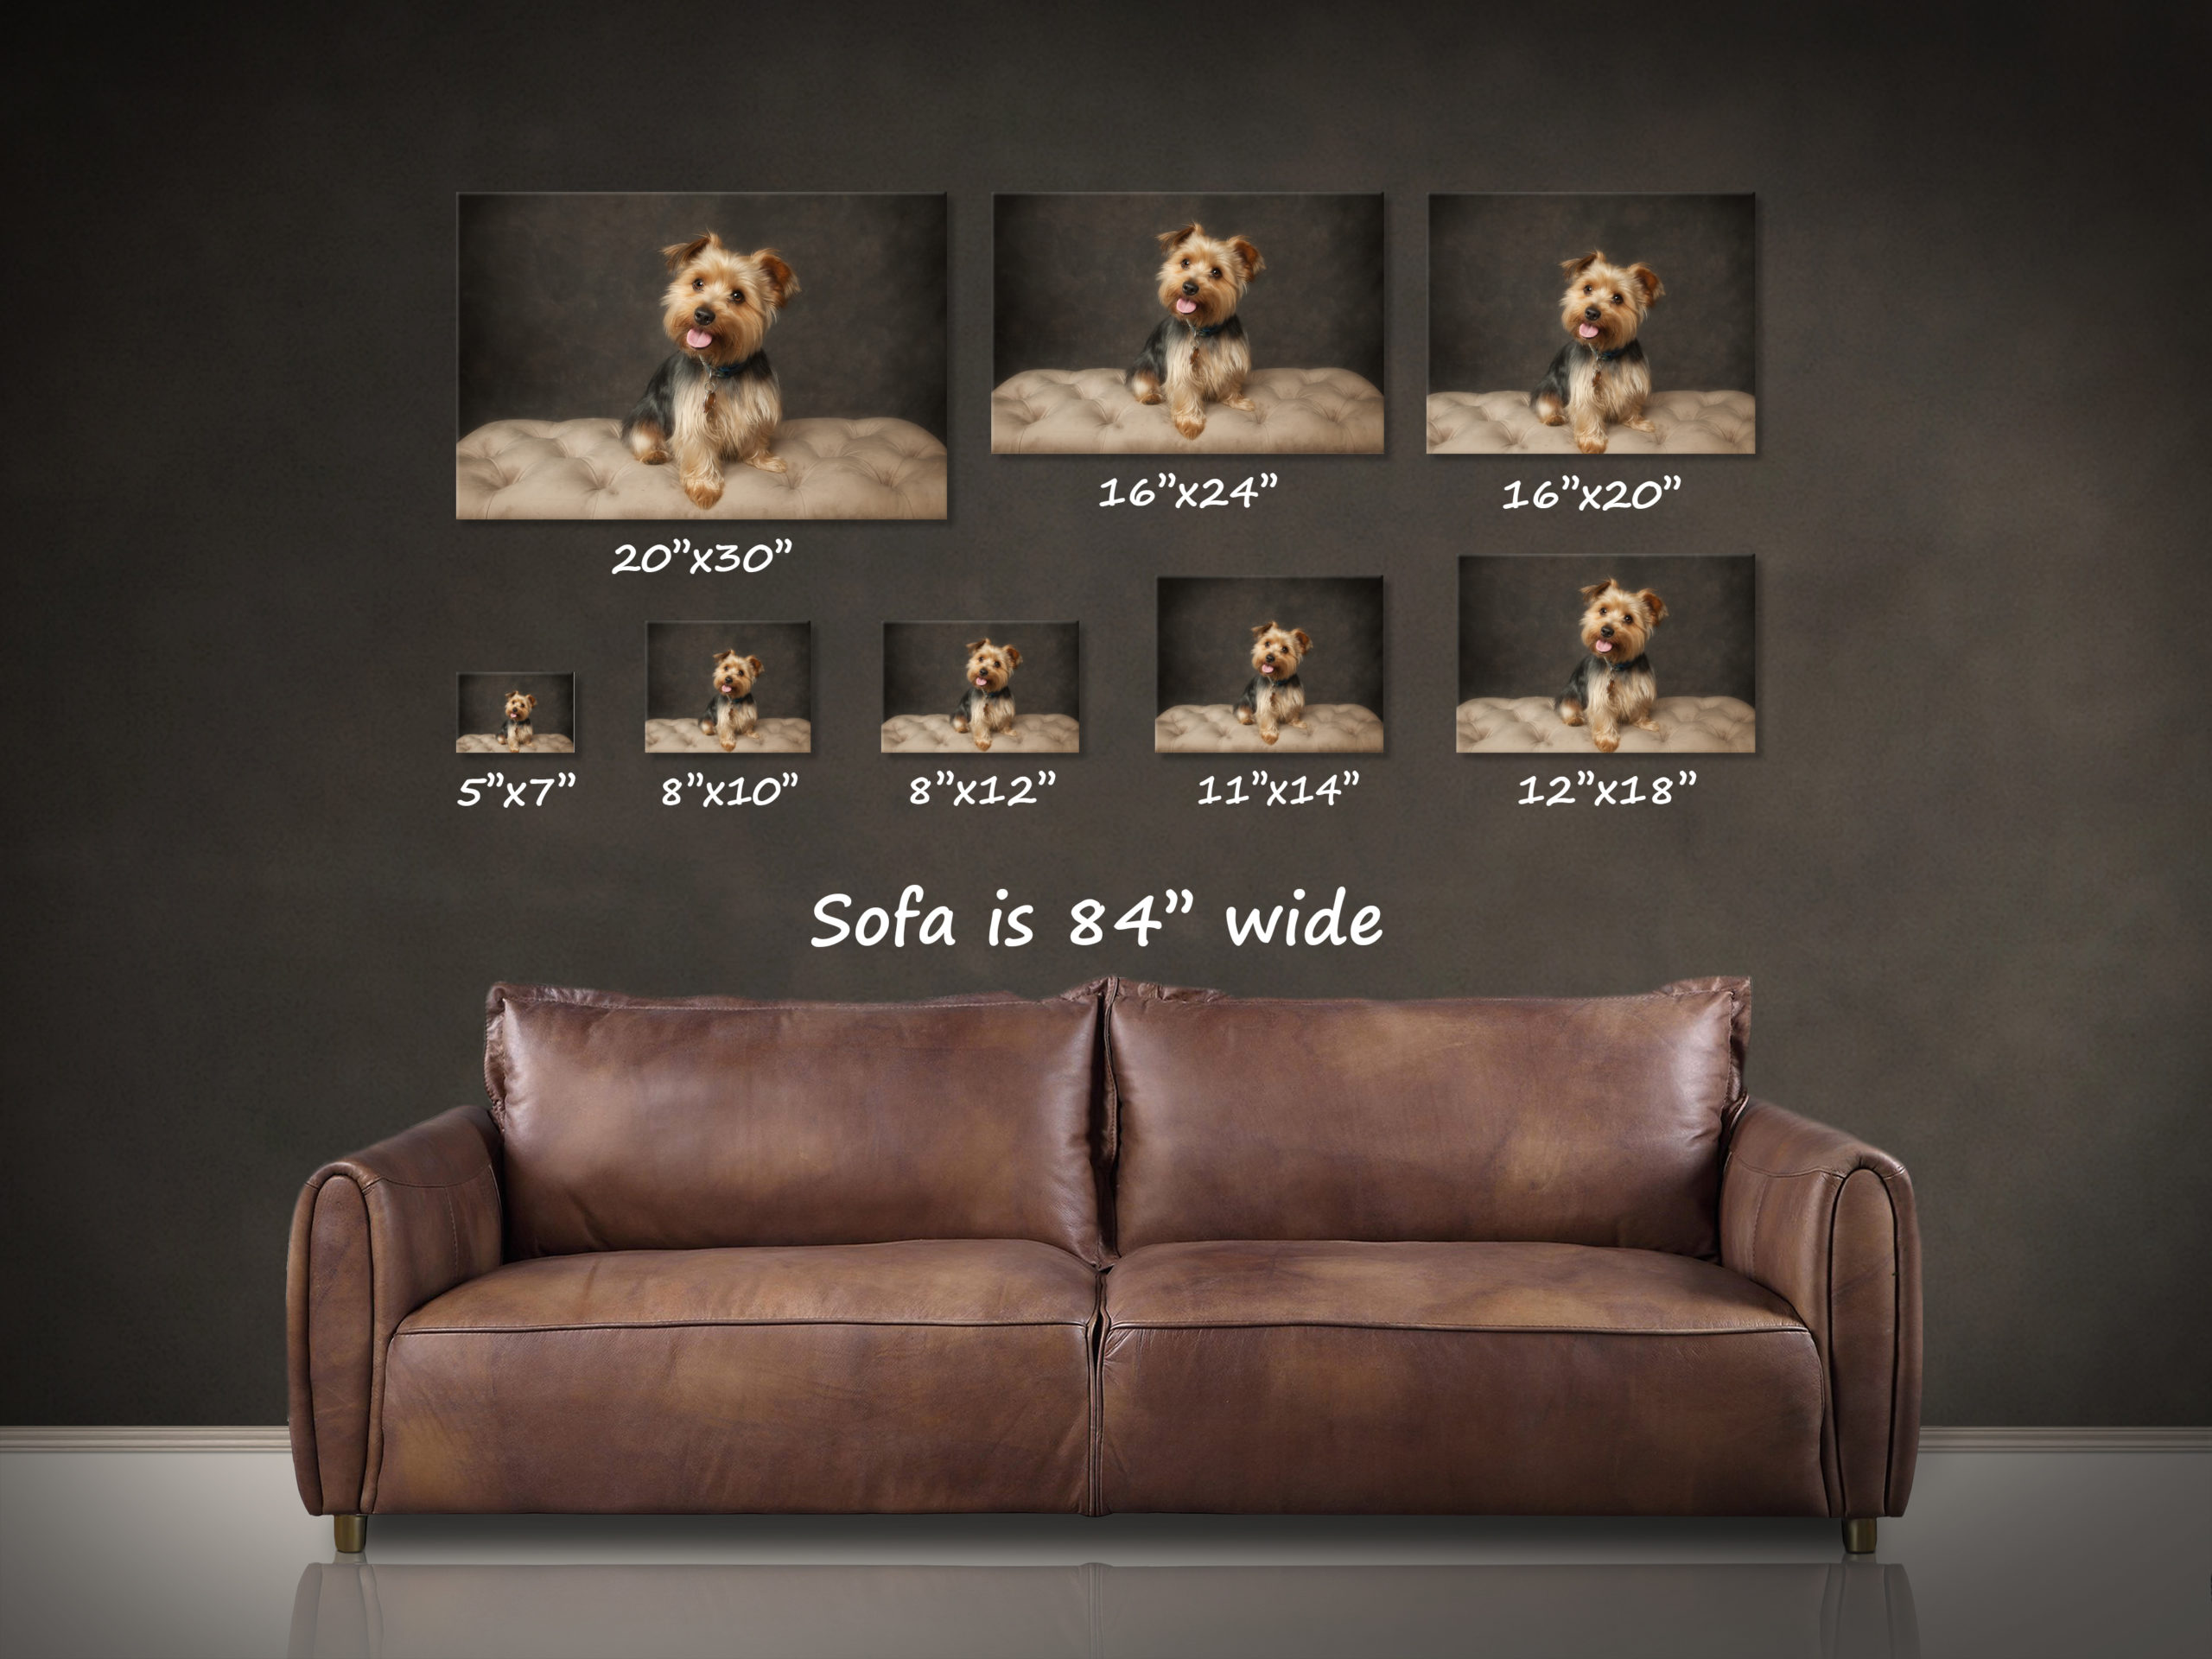 D20h brown leather sofa